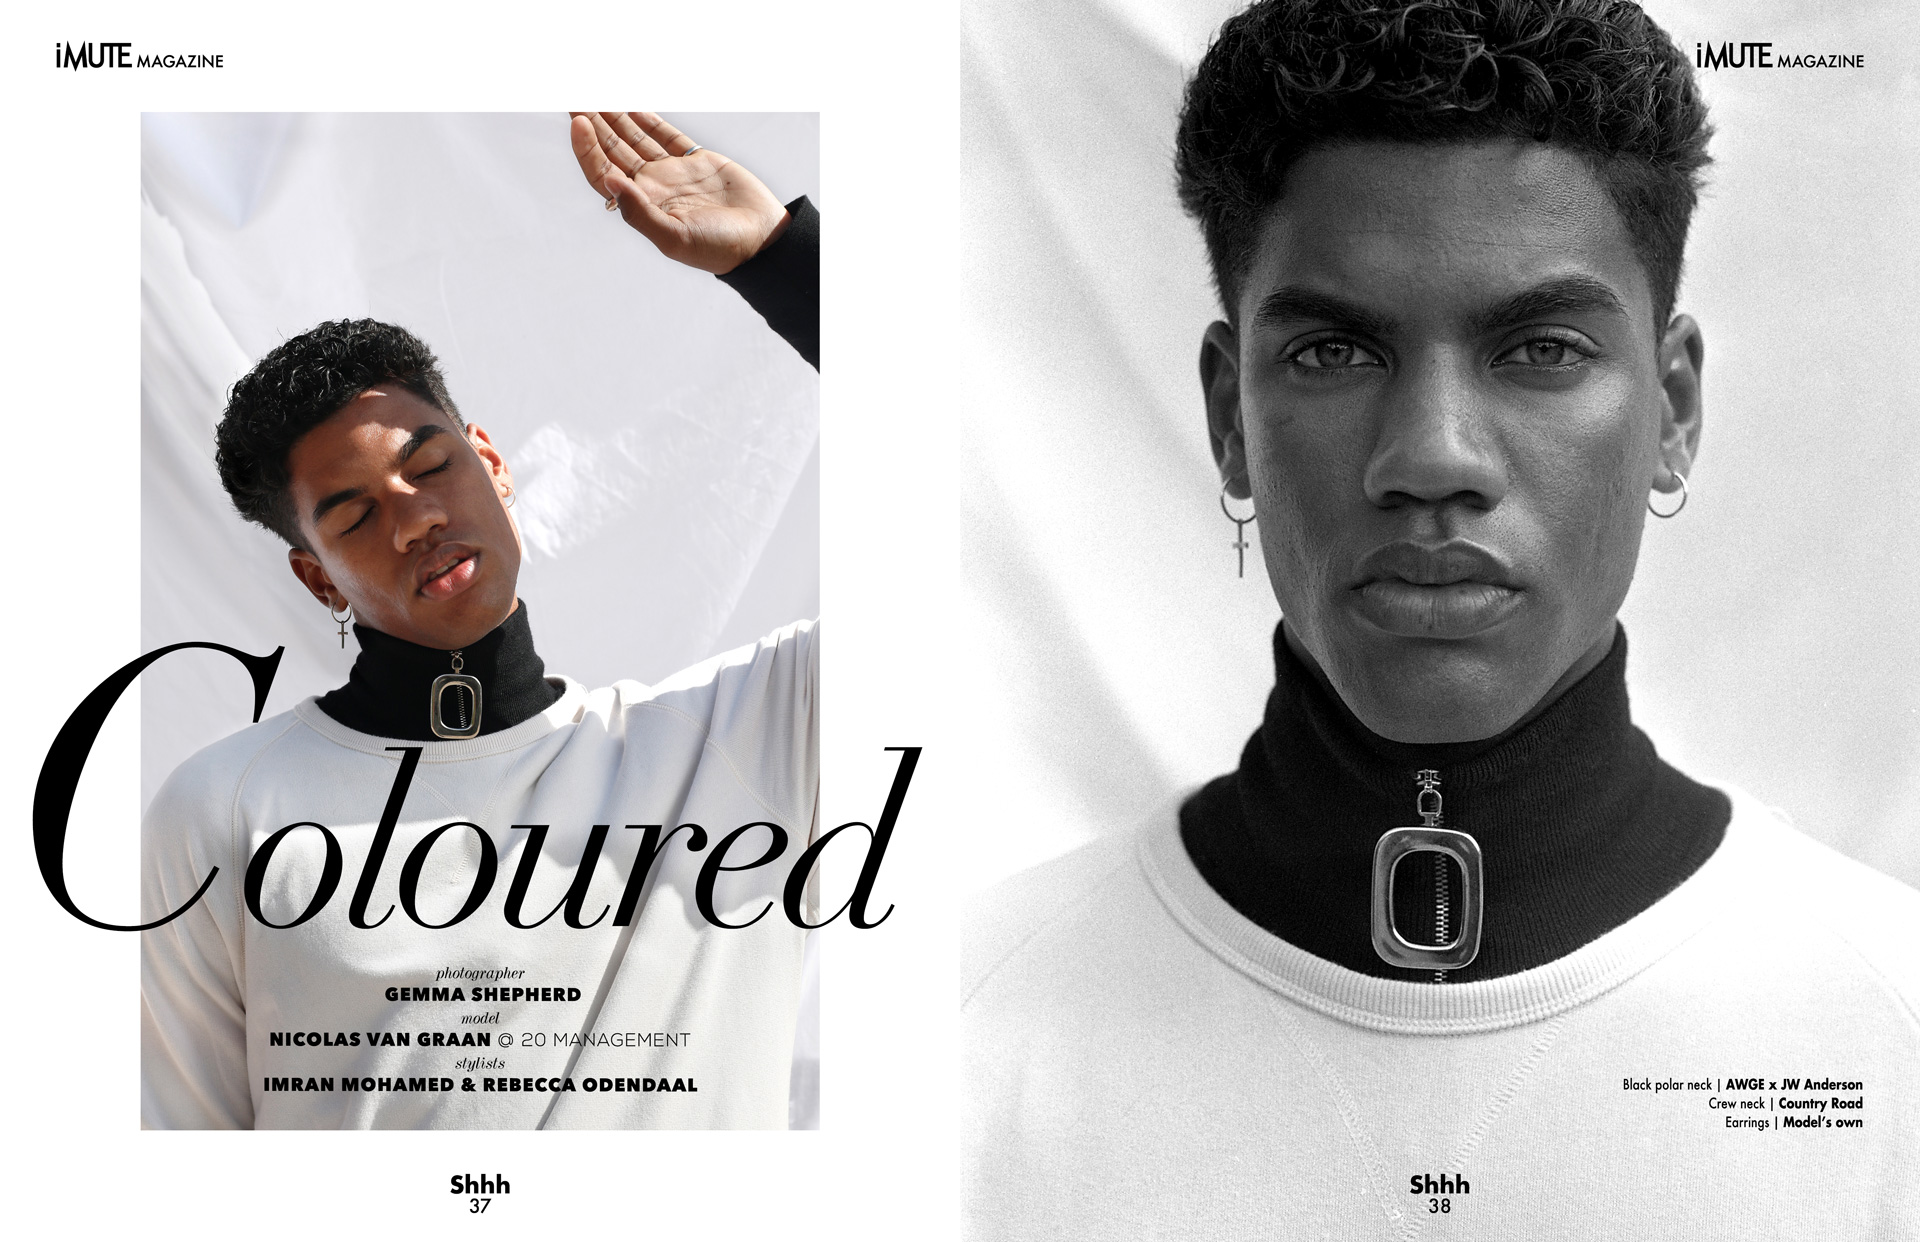 Coloured | Cover story iMute Magazine Fall Issue no 20 Photographer | Gemma Shepherd Model | Nicolas Van Graan @ 20 Management Stylists | Imran Mohamed & Rebecca Odendaal